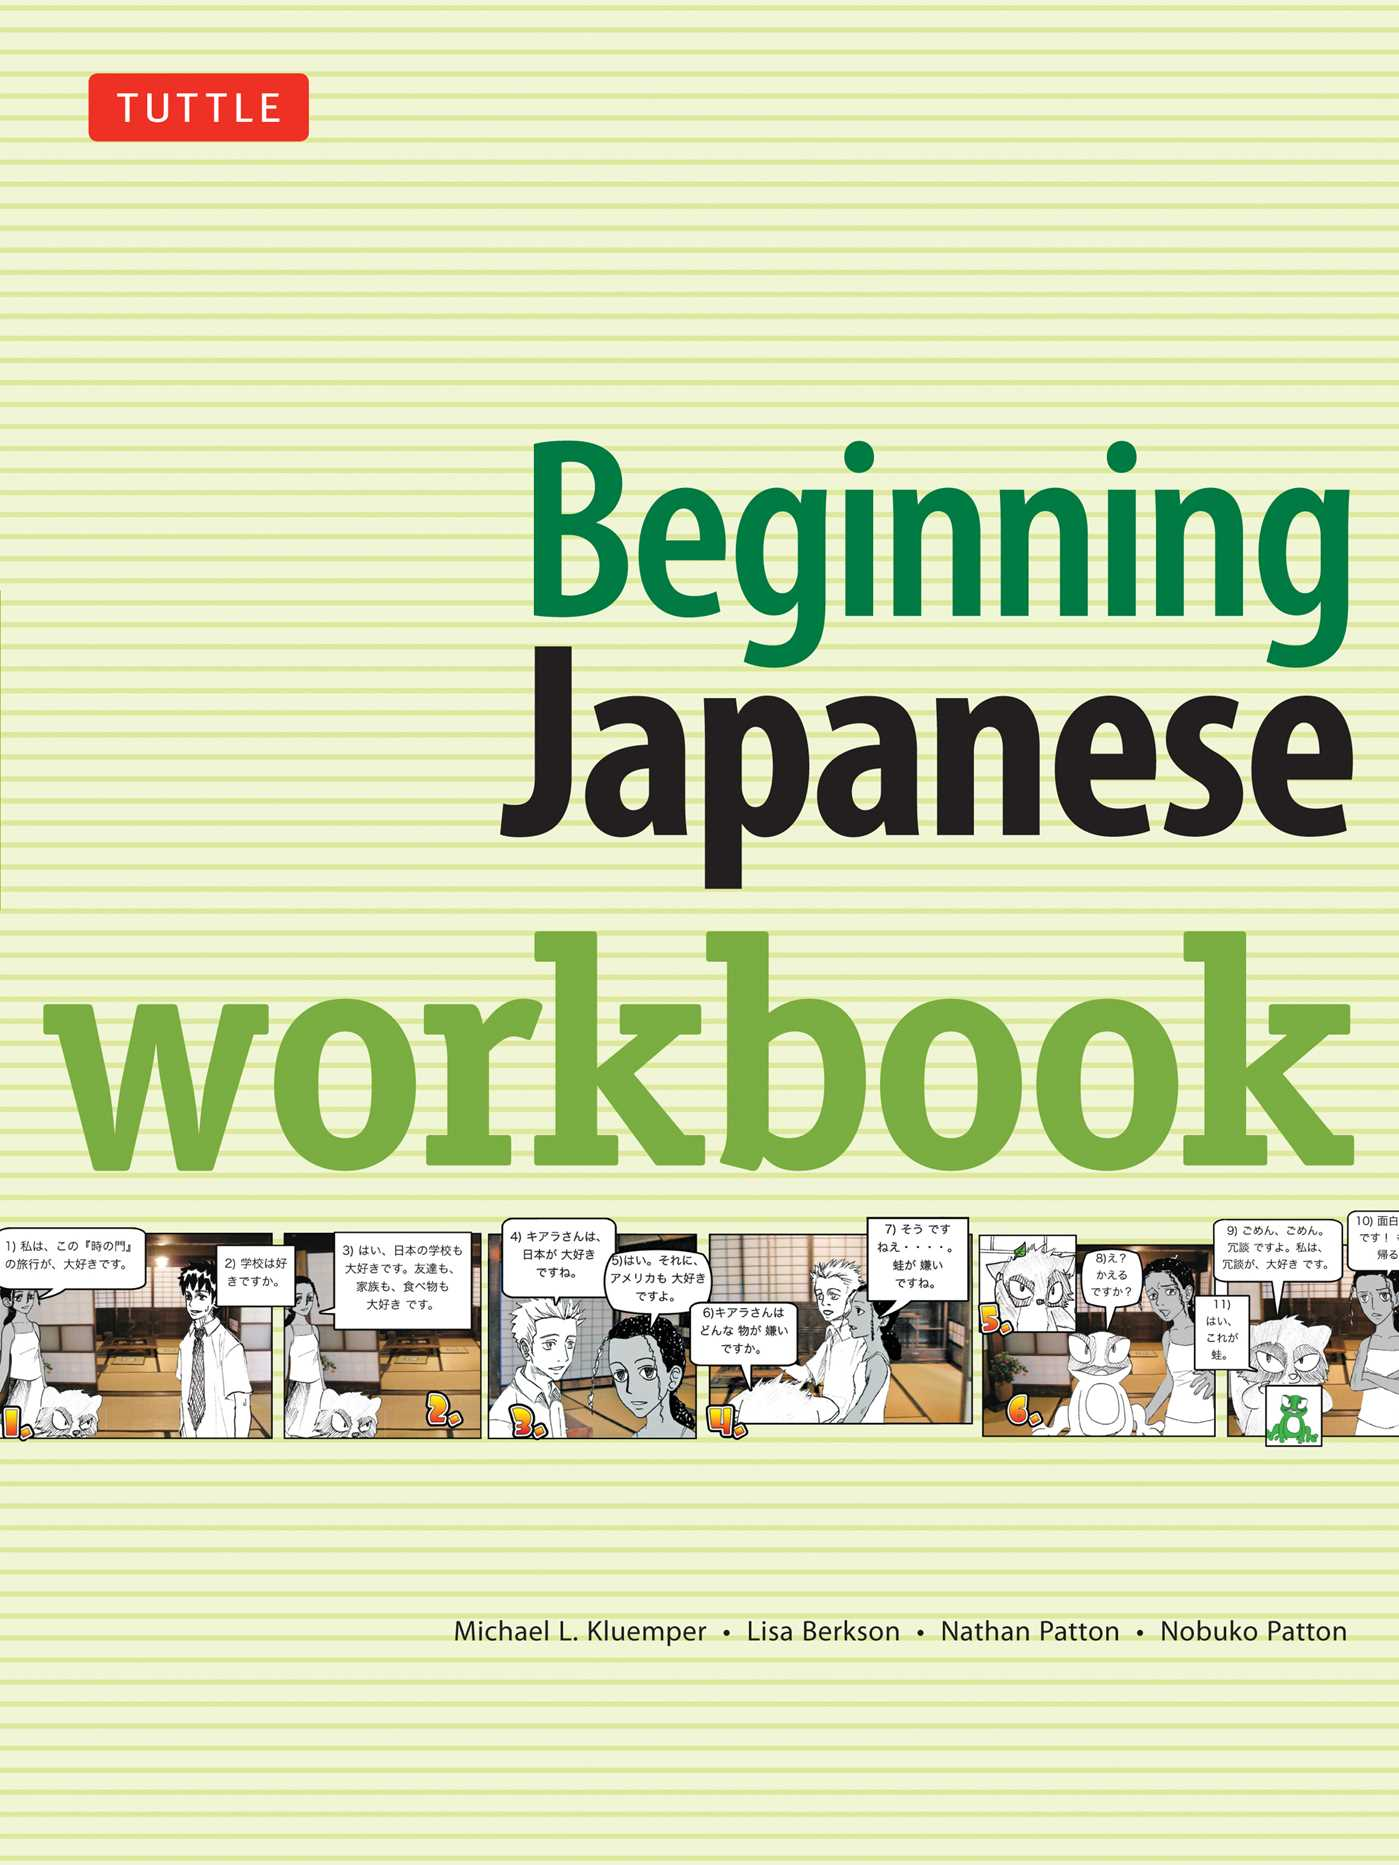 Beginning japanese workbook 9780804845588 hr